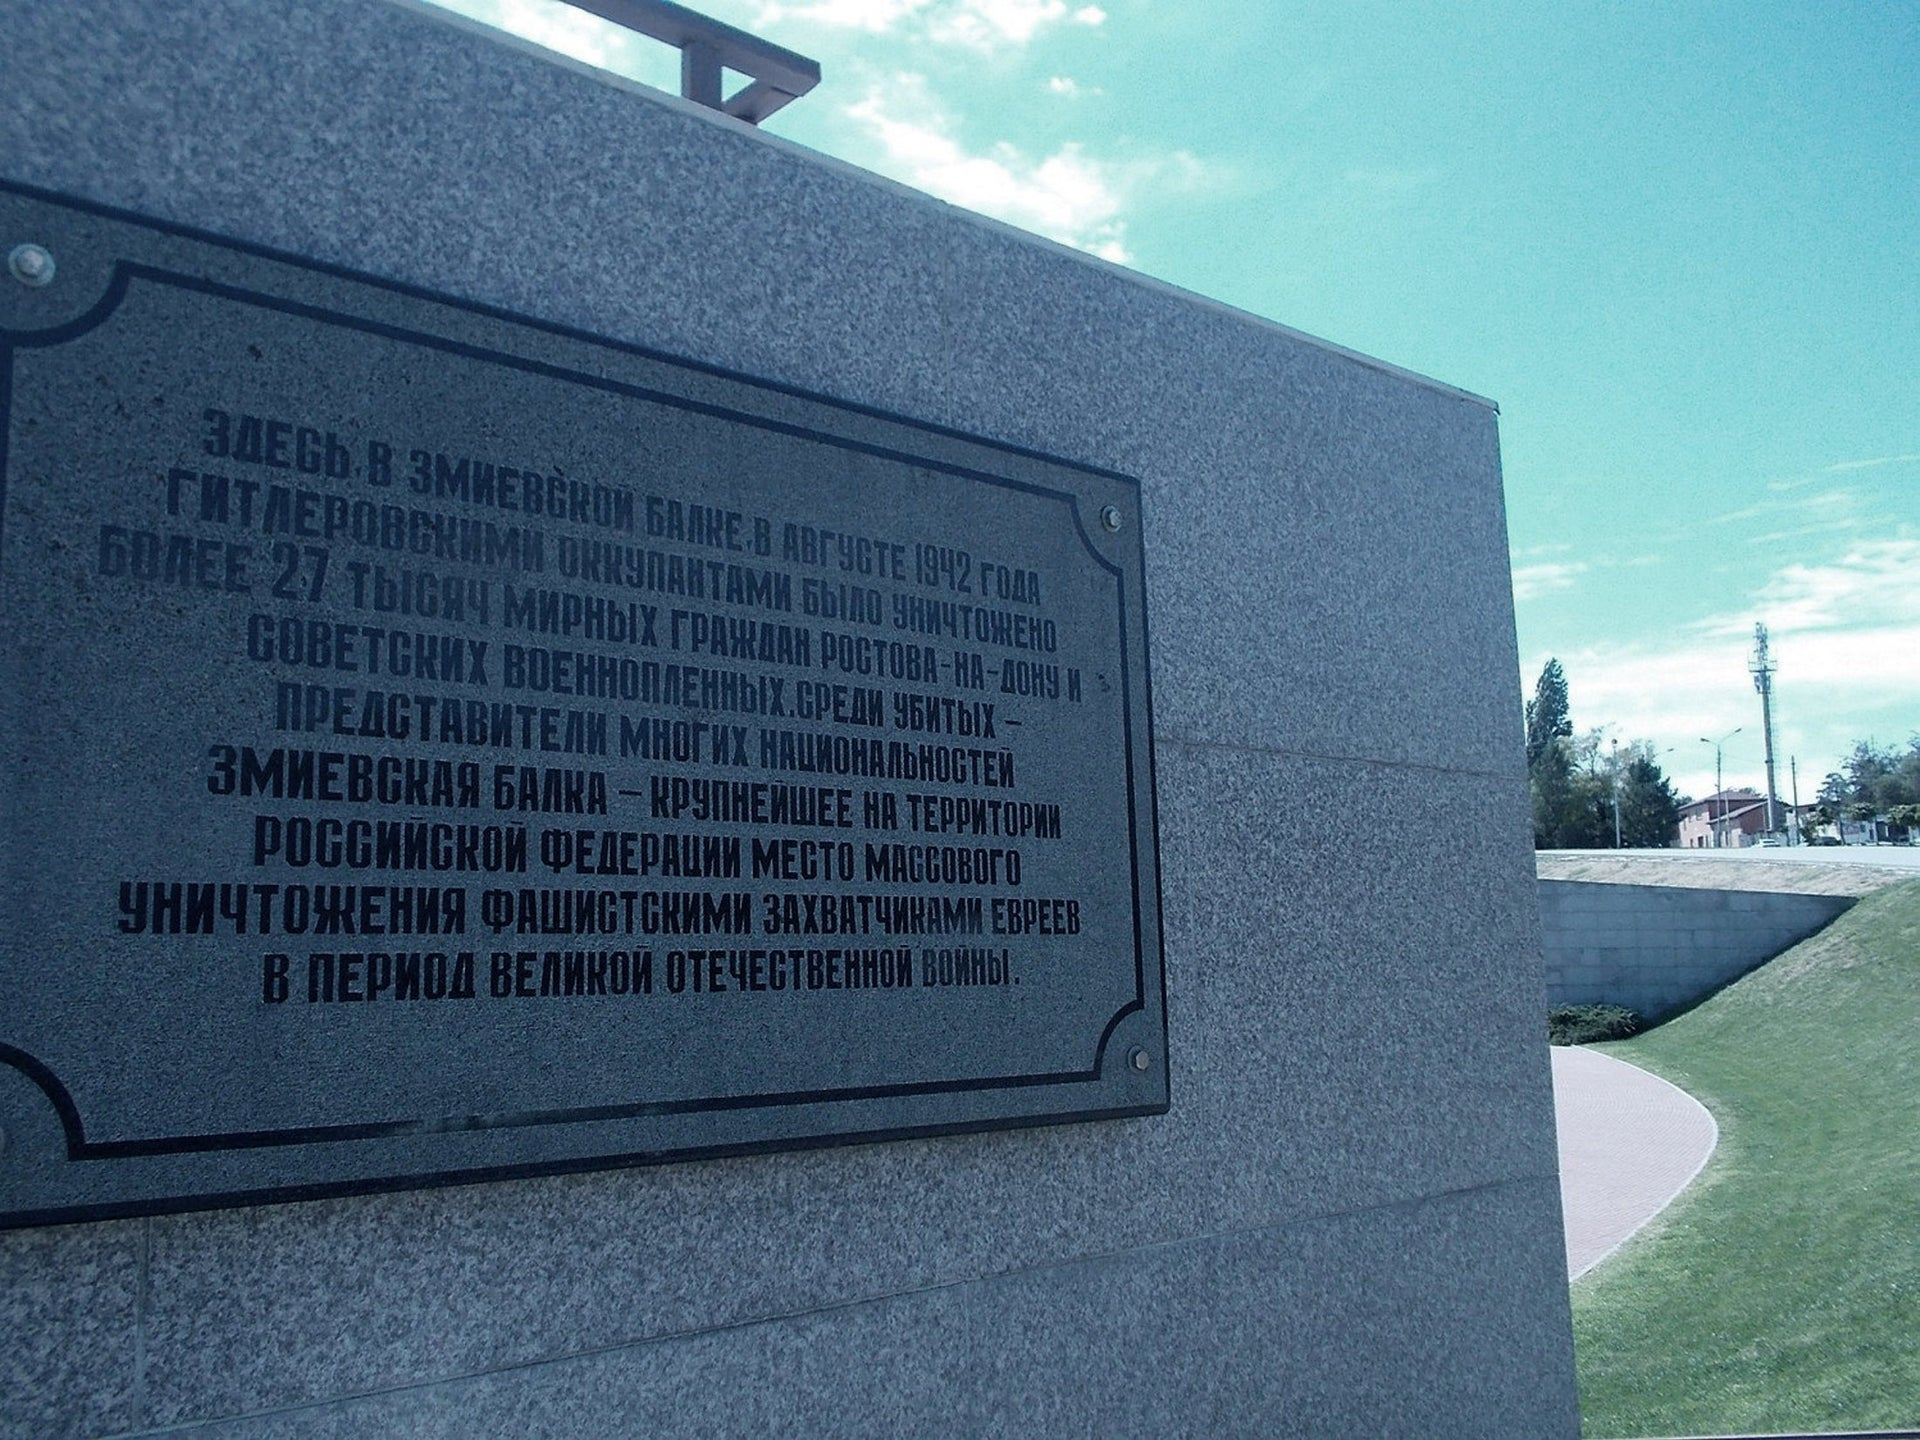 The plaque at Zmievskaya Balka, Rostov-on-Don, marking the massacre of some 27,000 people at the site by the Nazis in August 1942.